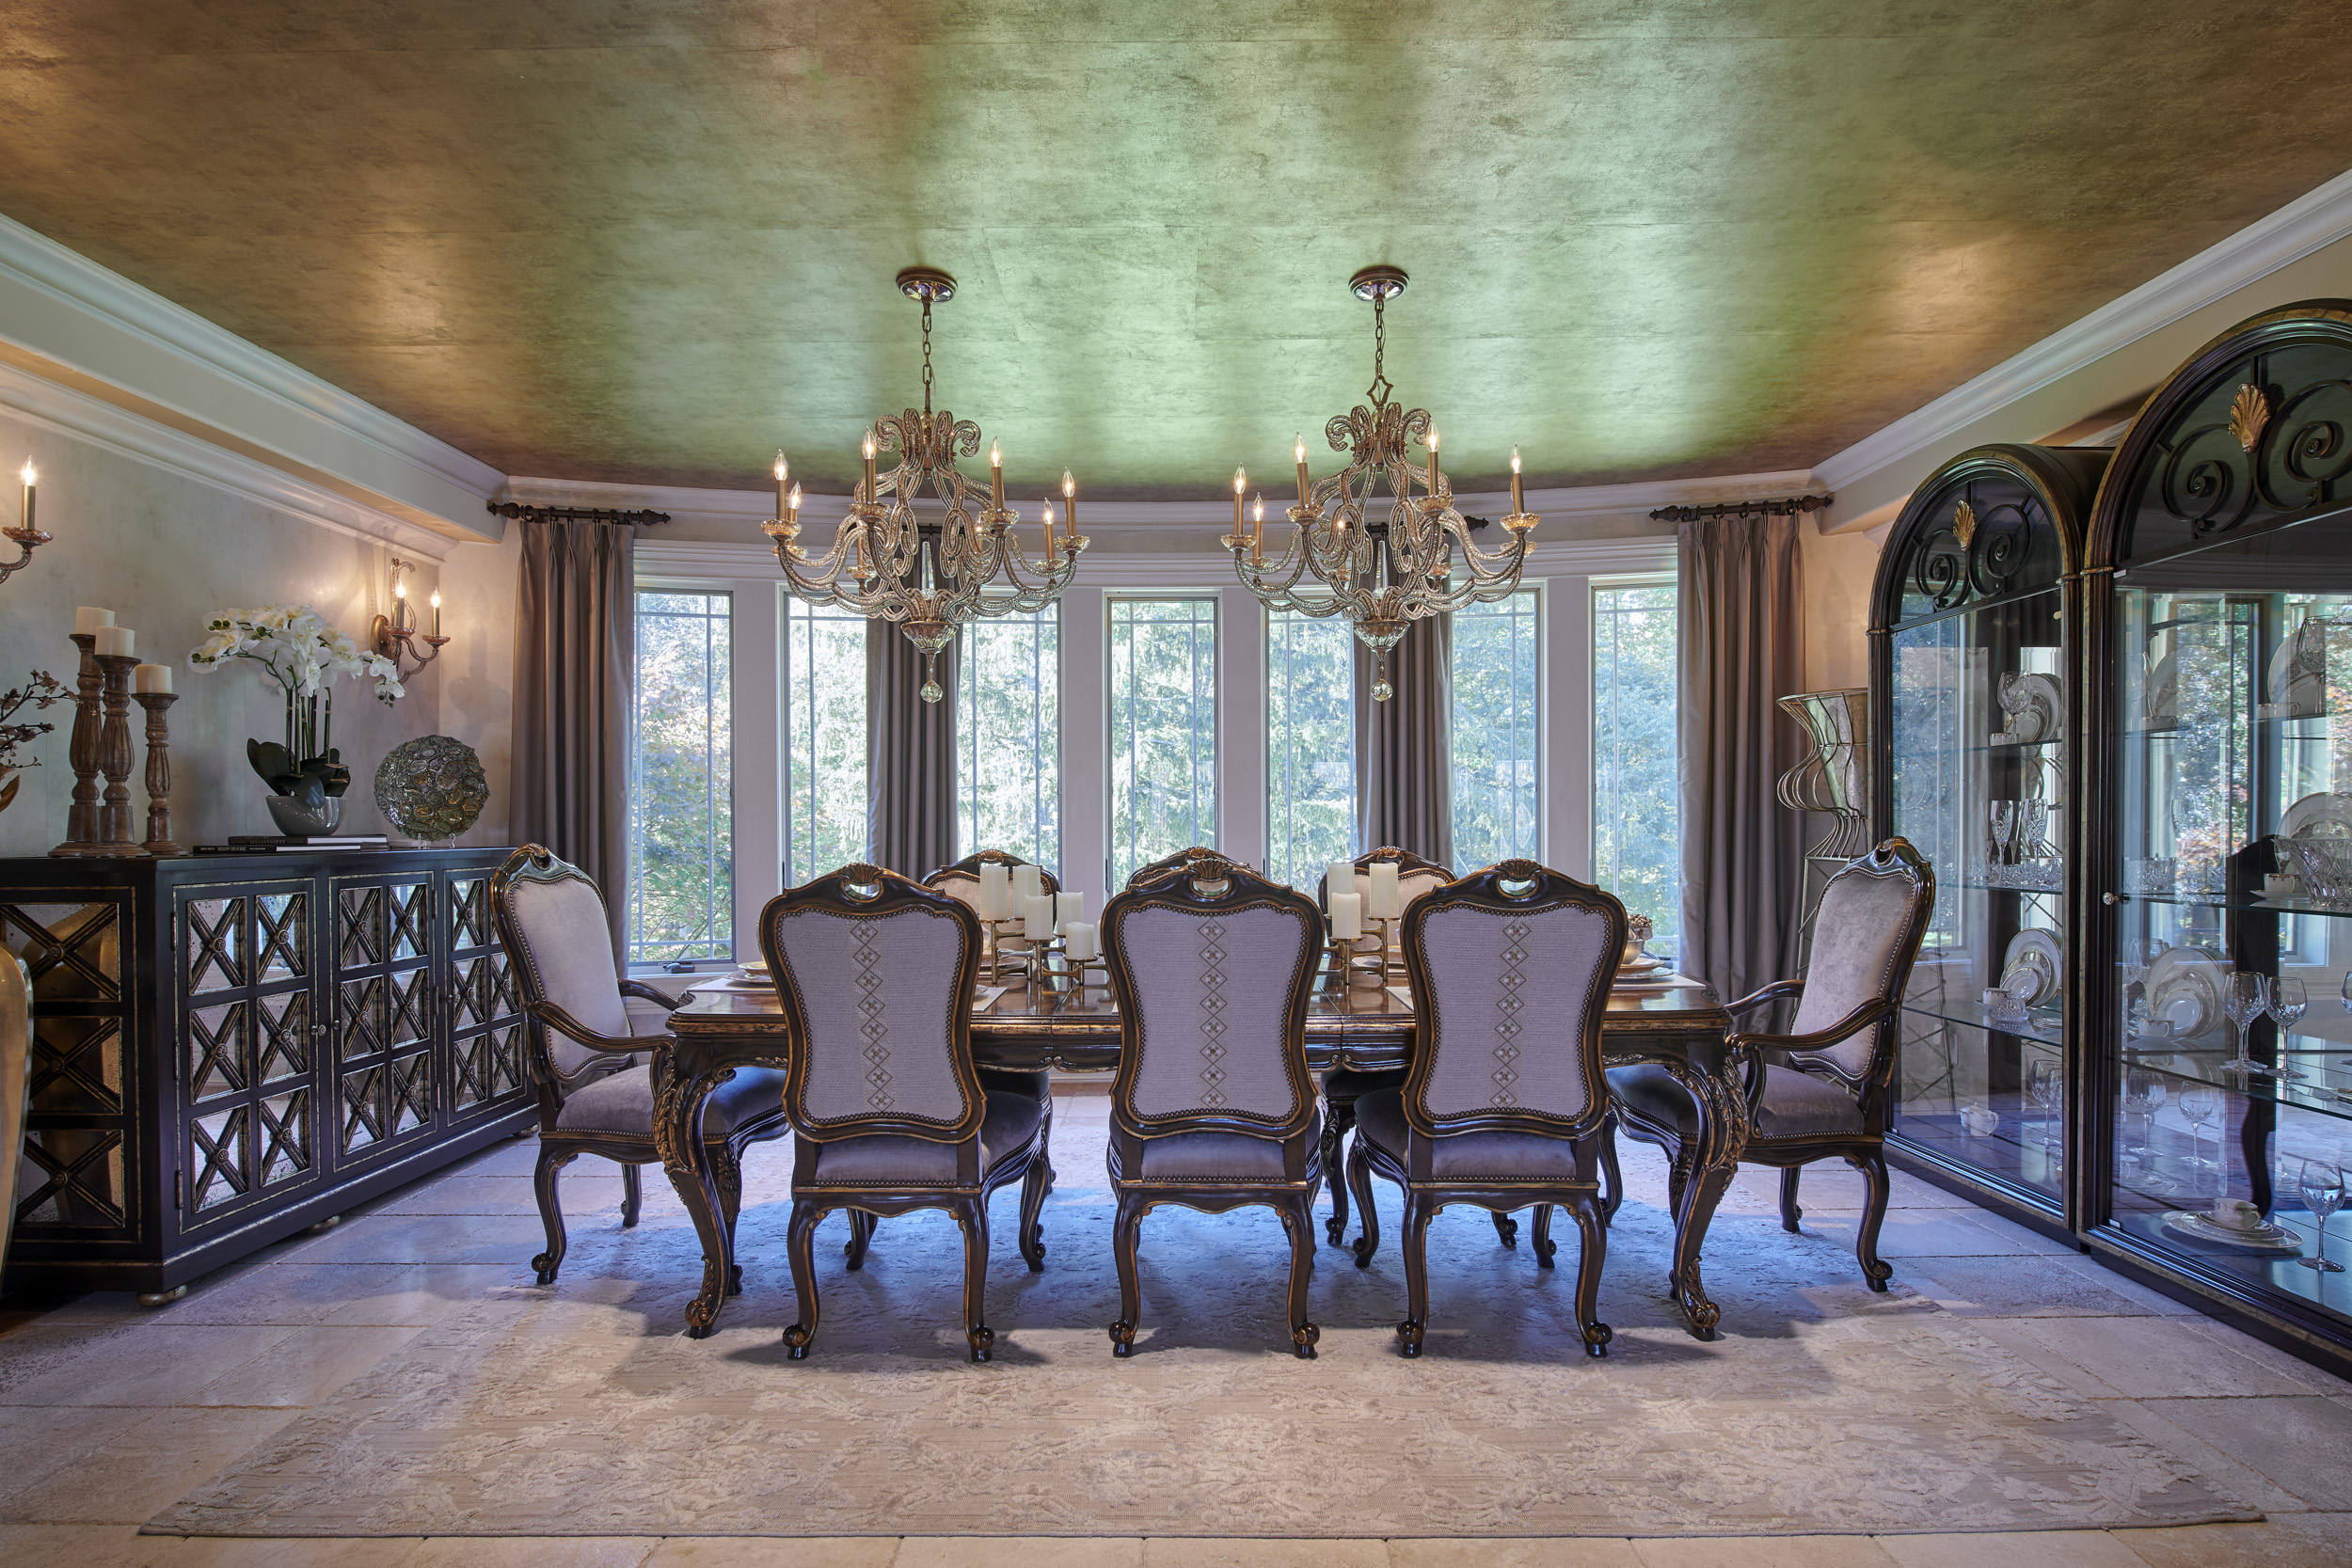 Project Reveal – Elegant formal dining room in Paramus, NJ